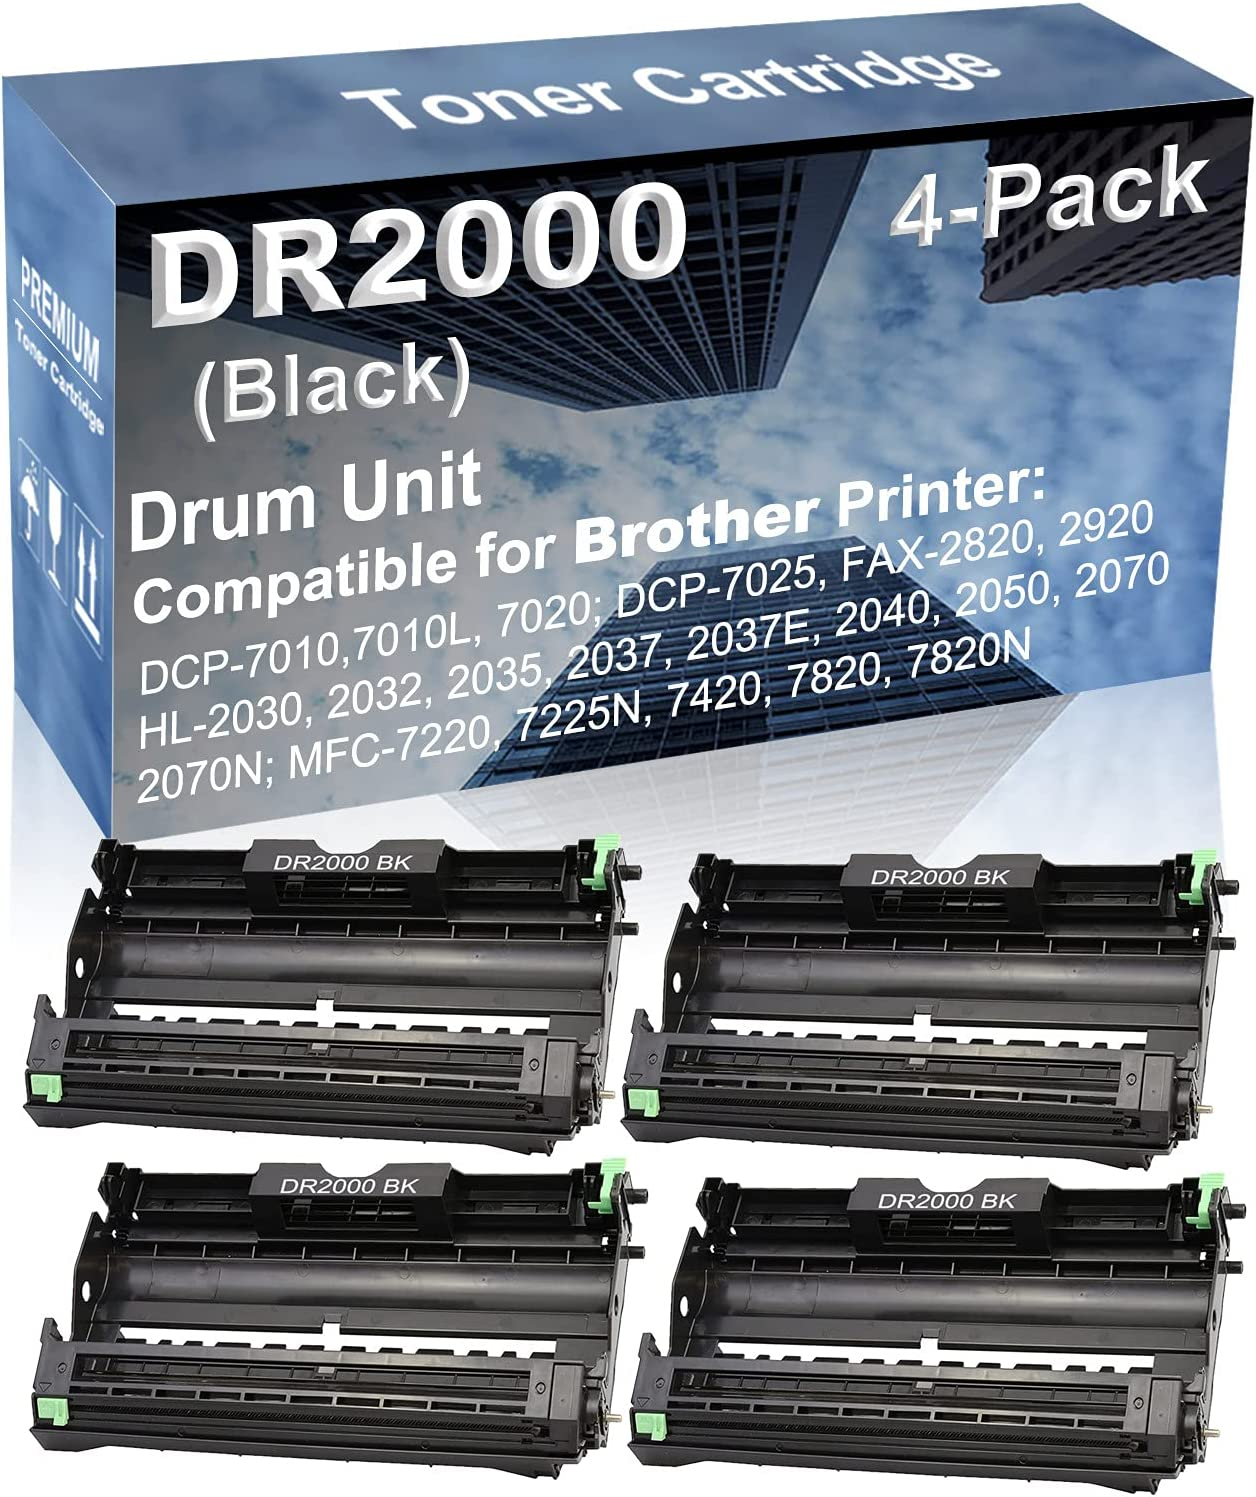 4-Pack Compatible Drum Unit (Black) Replacement for Brother DR2000 Drum Kit use for Brother HL-2070N, MFC-7220, MFC-7225N, MFC-7420, MFC-7820, MFC-7820N Printer